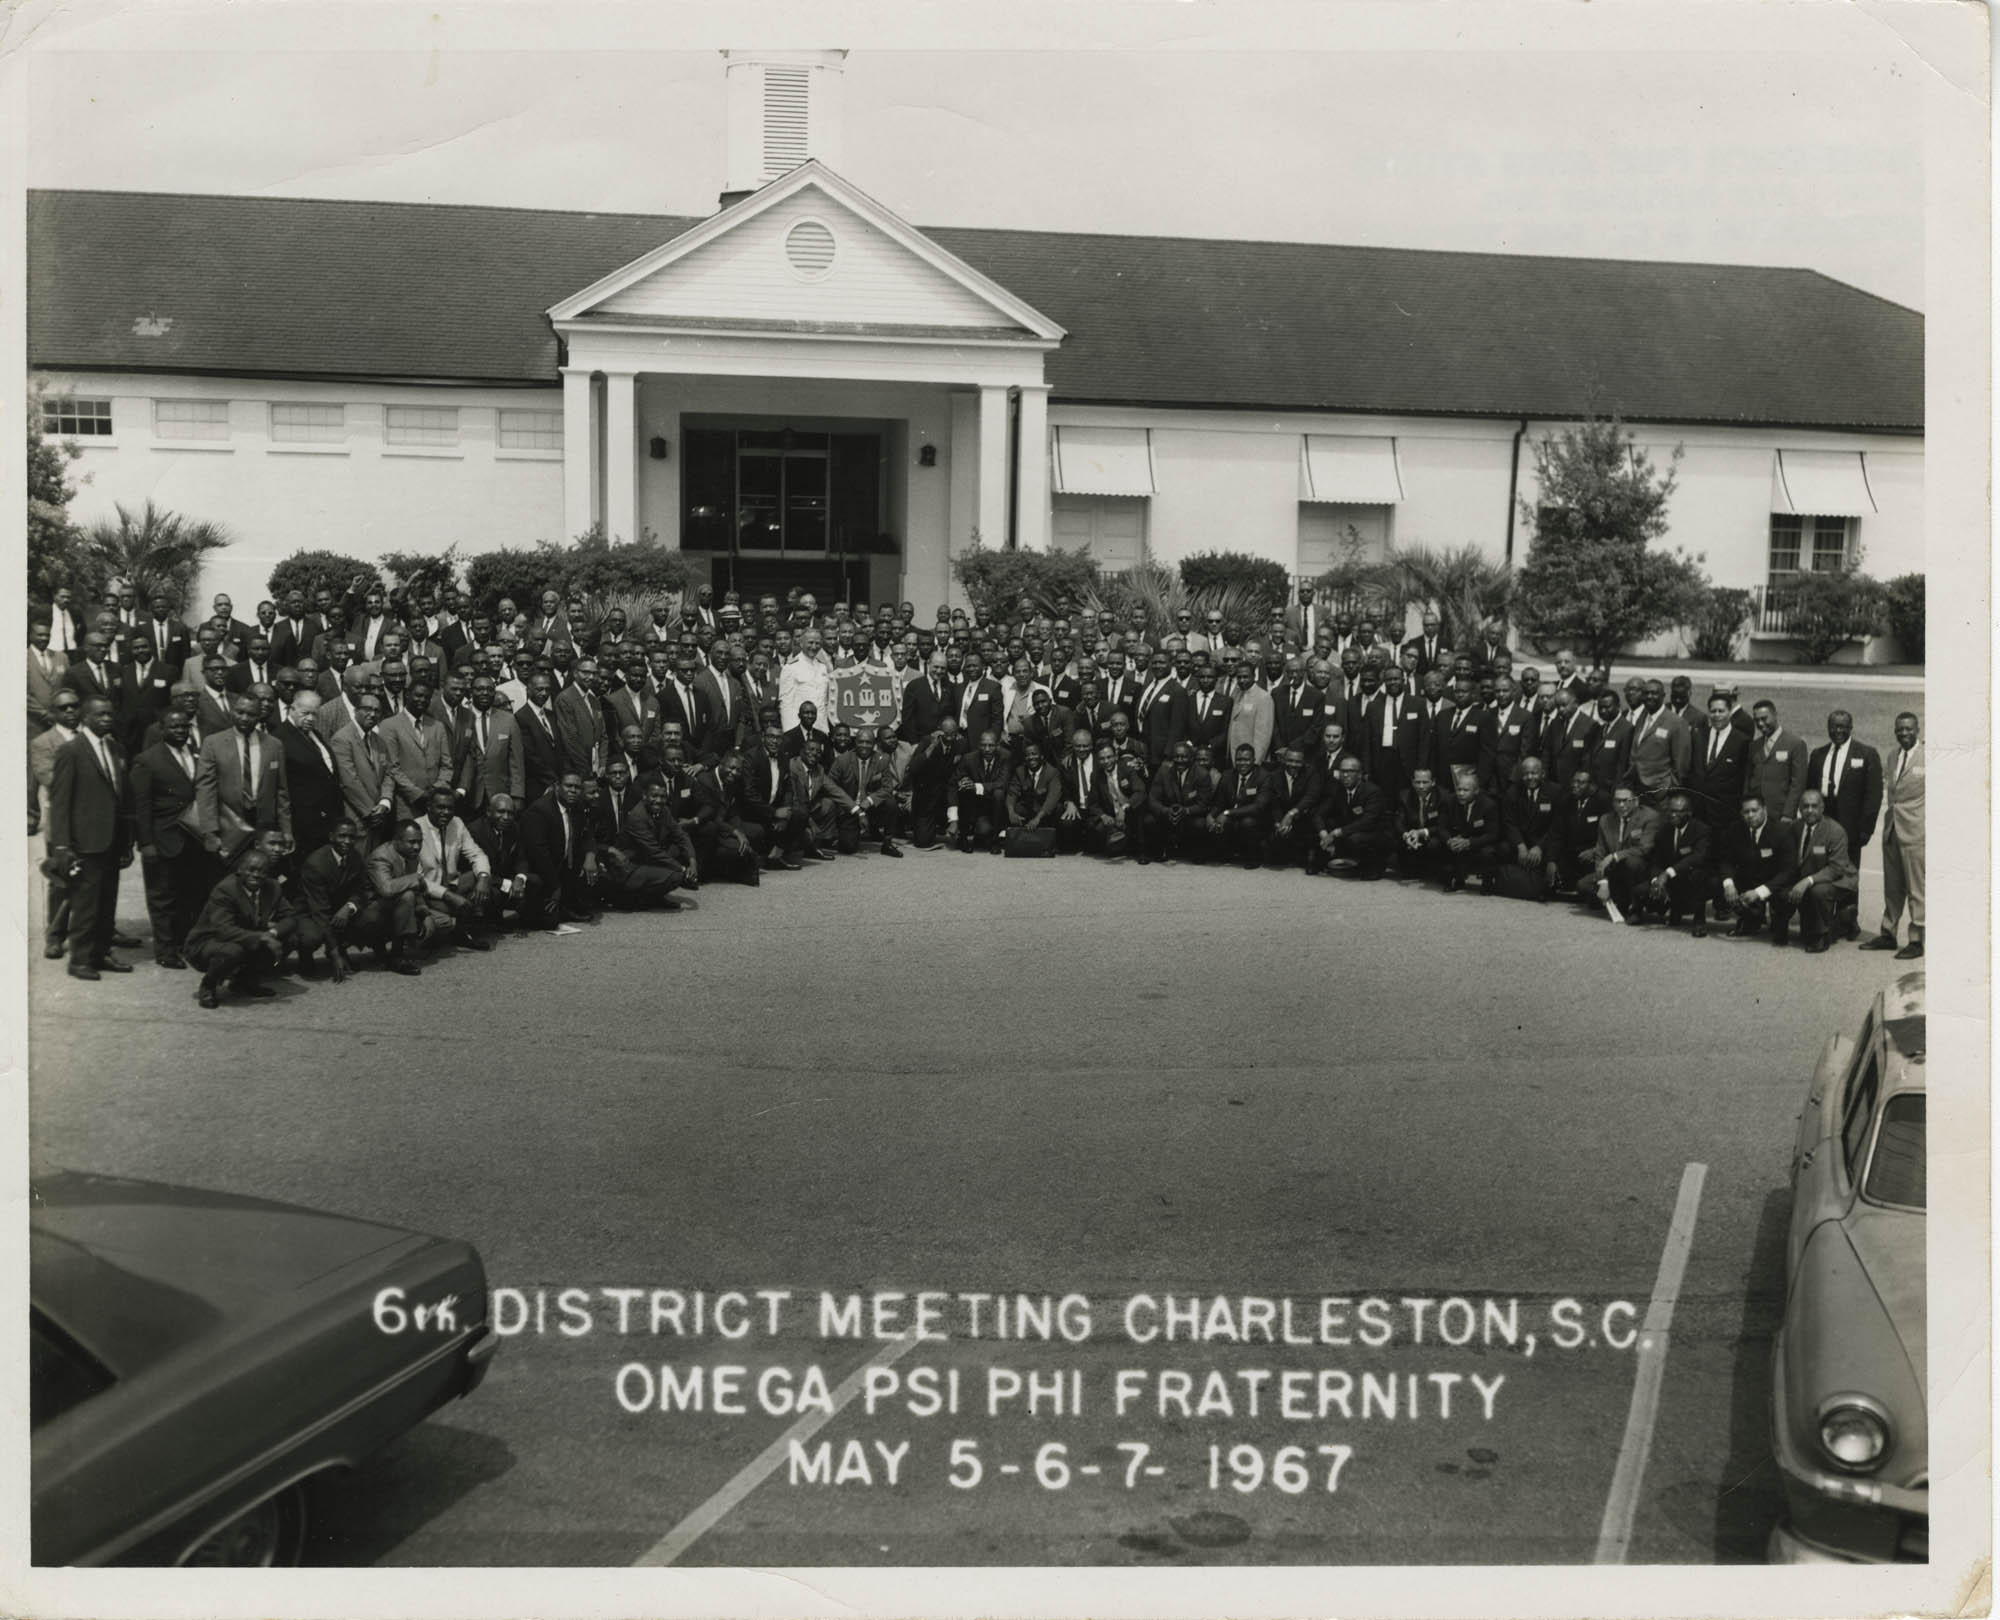 Photograph of the 6th District Meeting of the Omega Psi Phi Fraternity